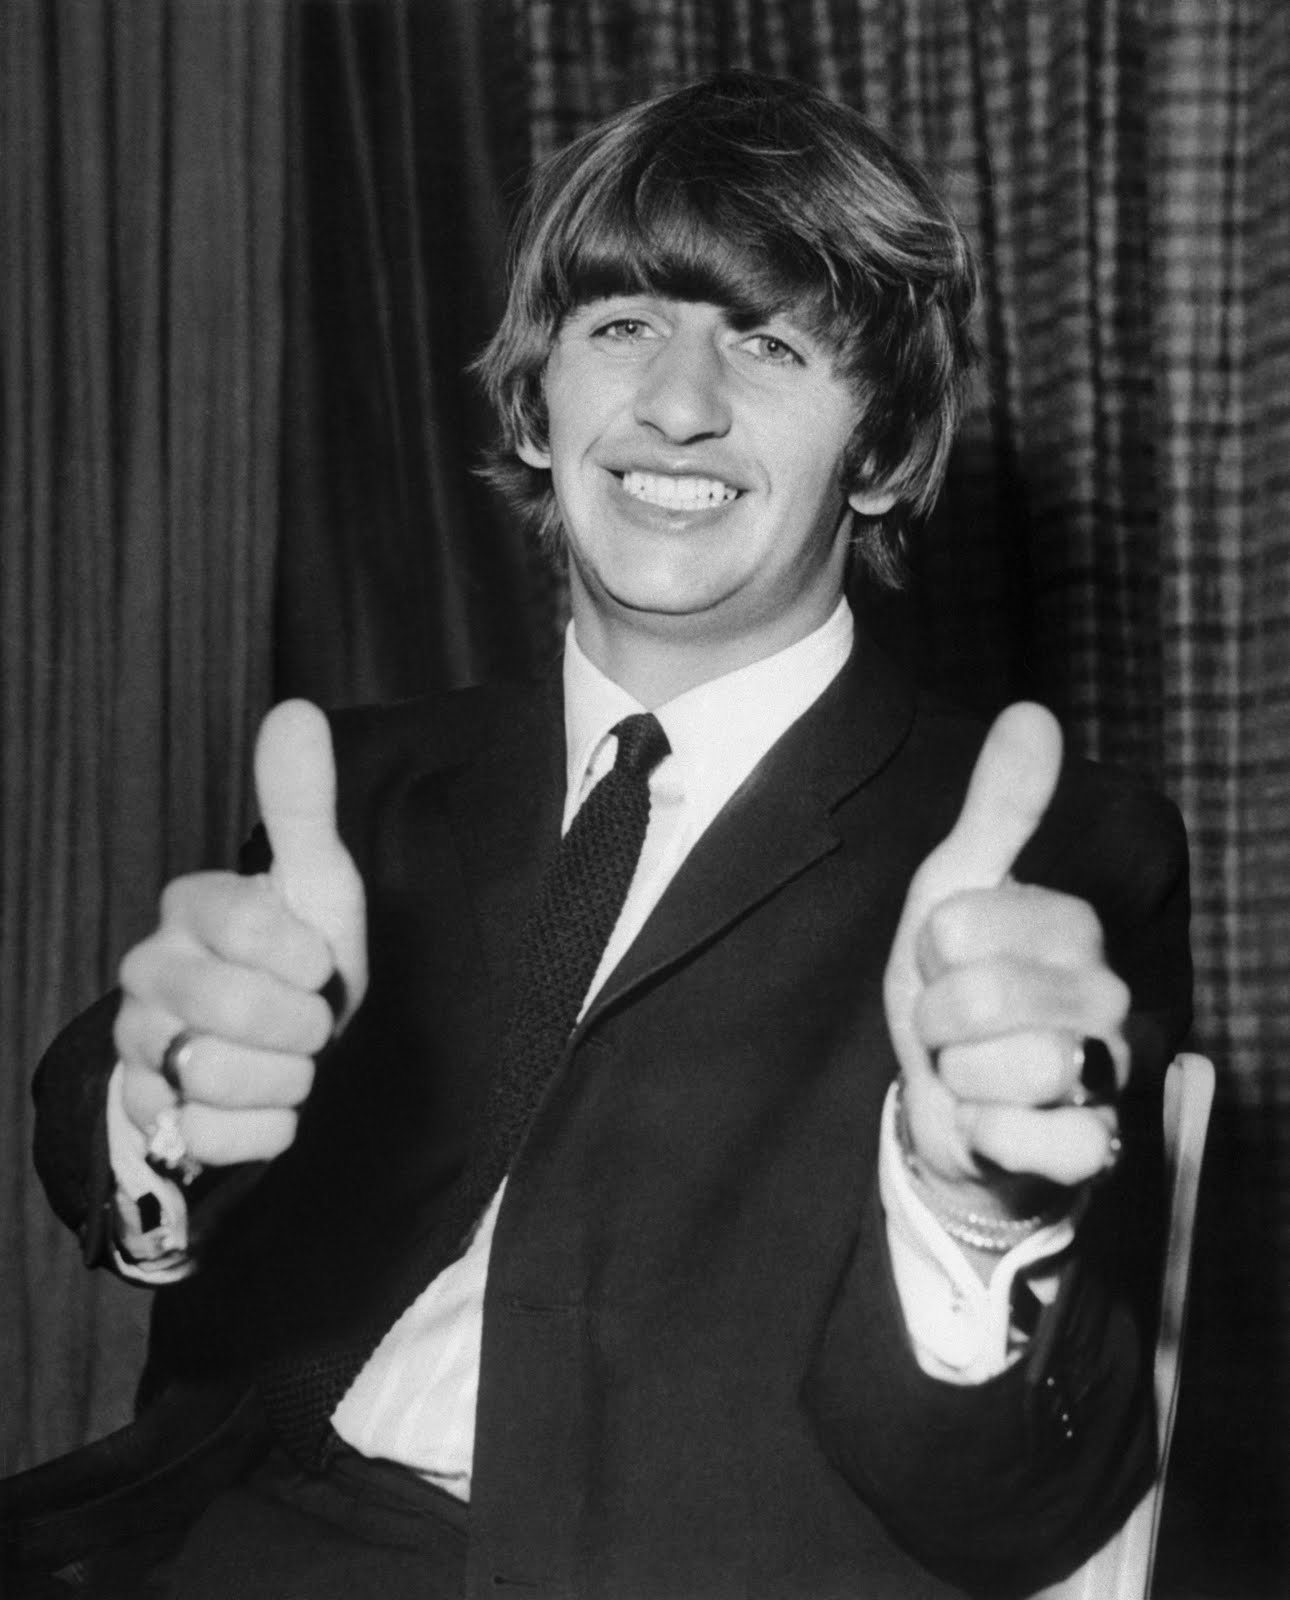 Was here ringo starr